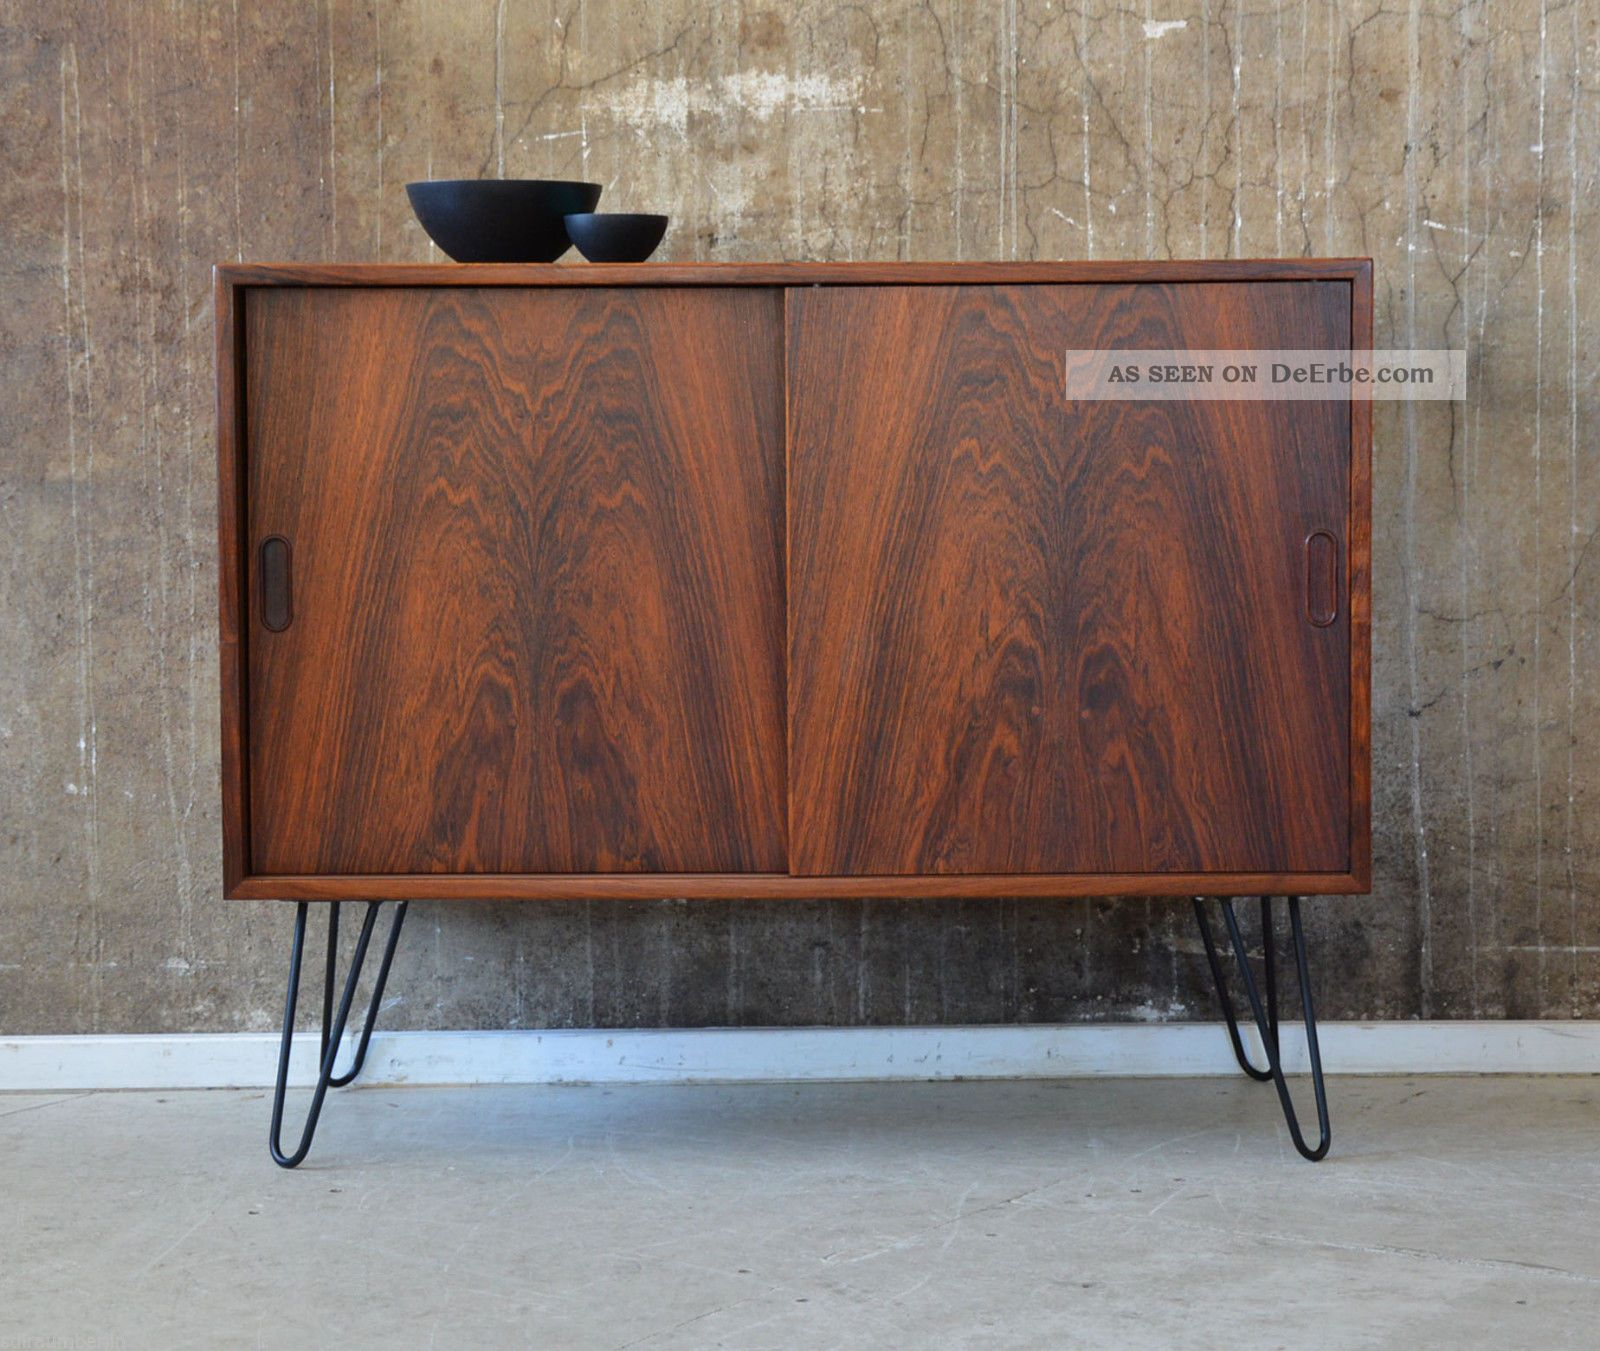 60er palisander kommode danish design 60s rosewood cabinet. Black Bedroom Furniture Sets. Home Design Ideas